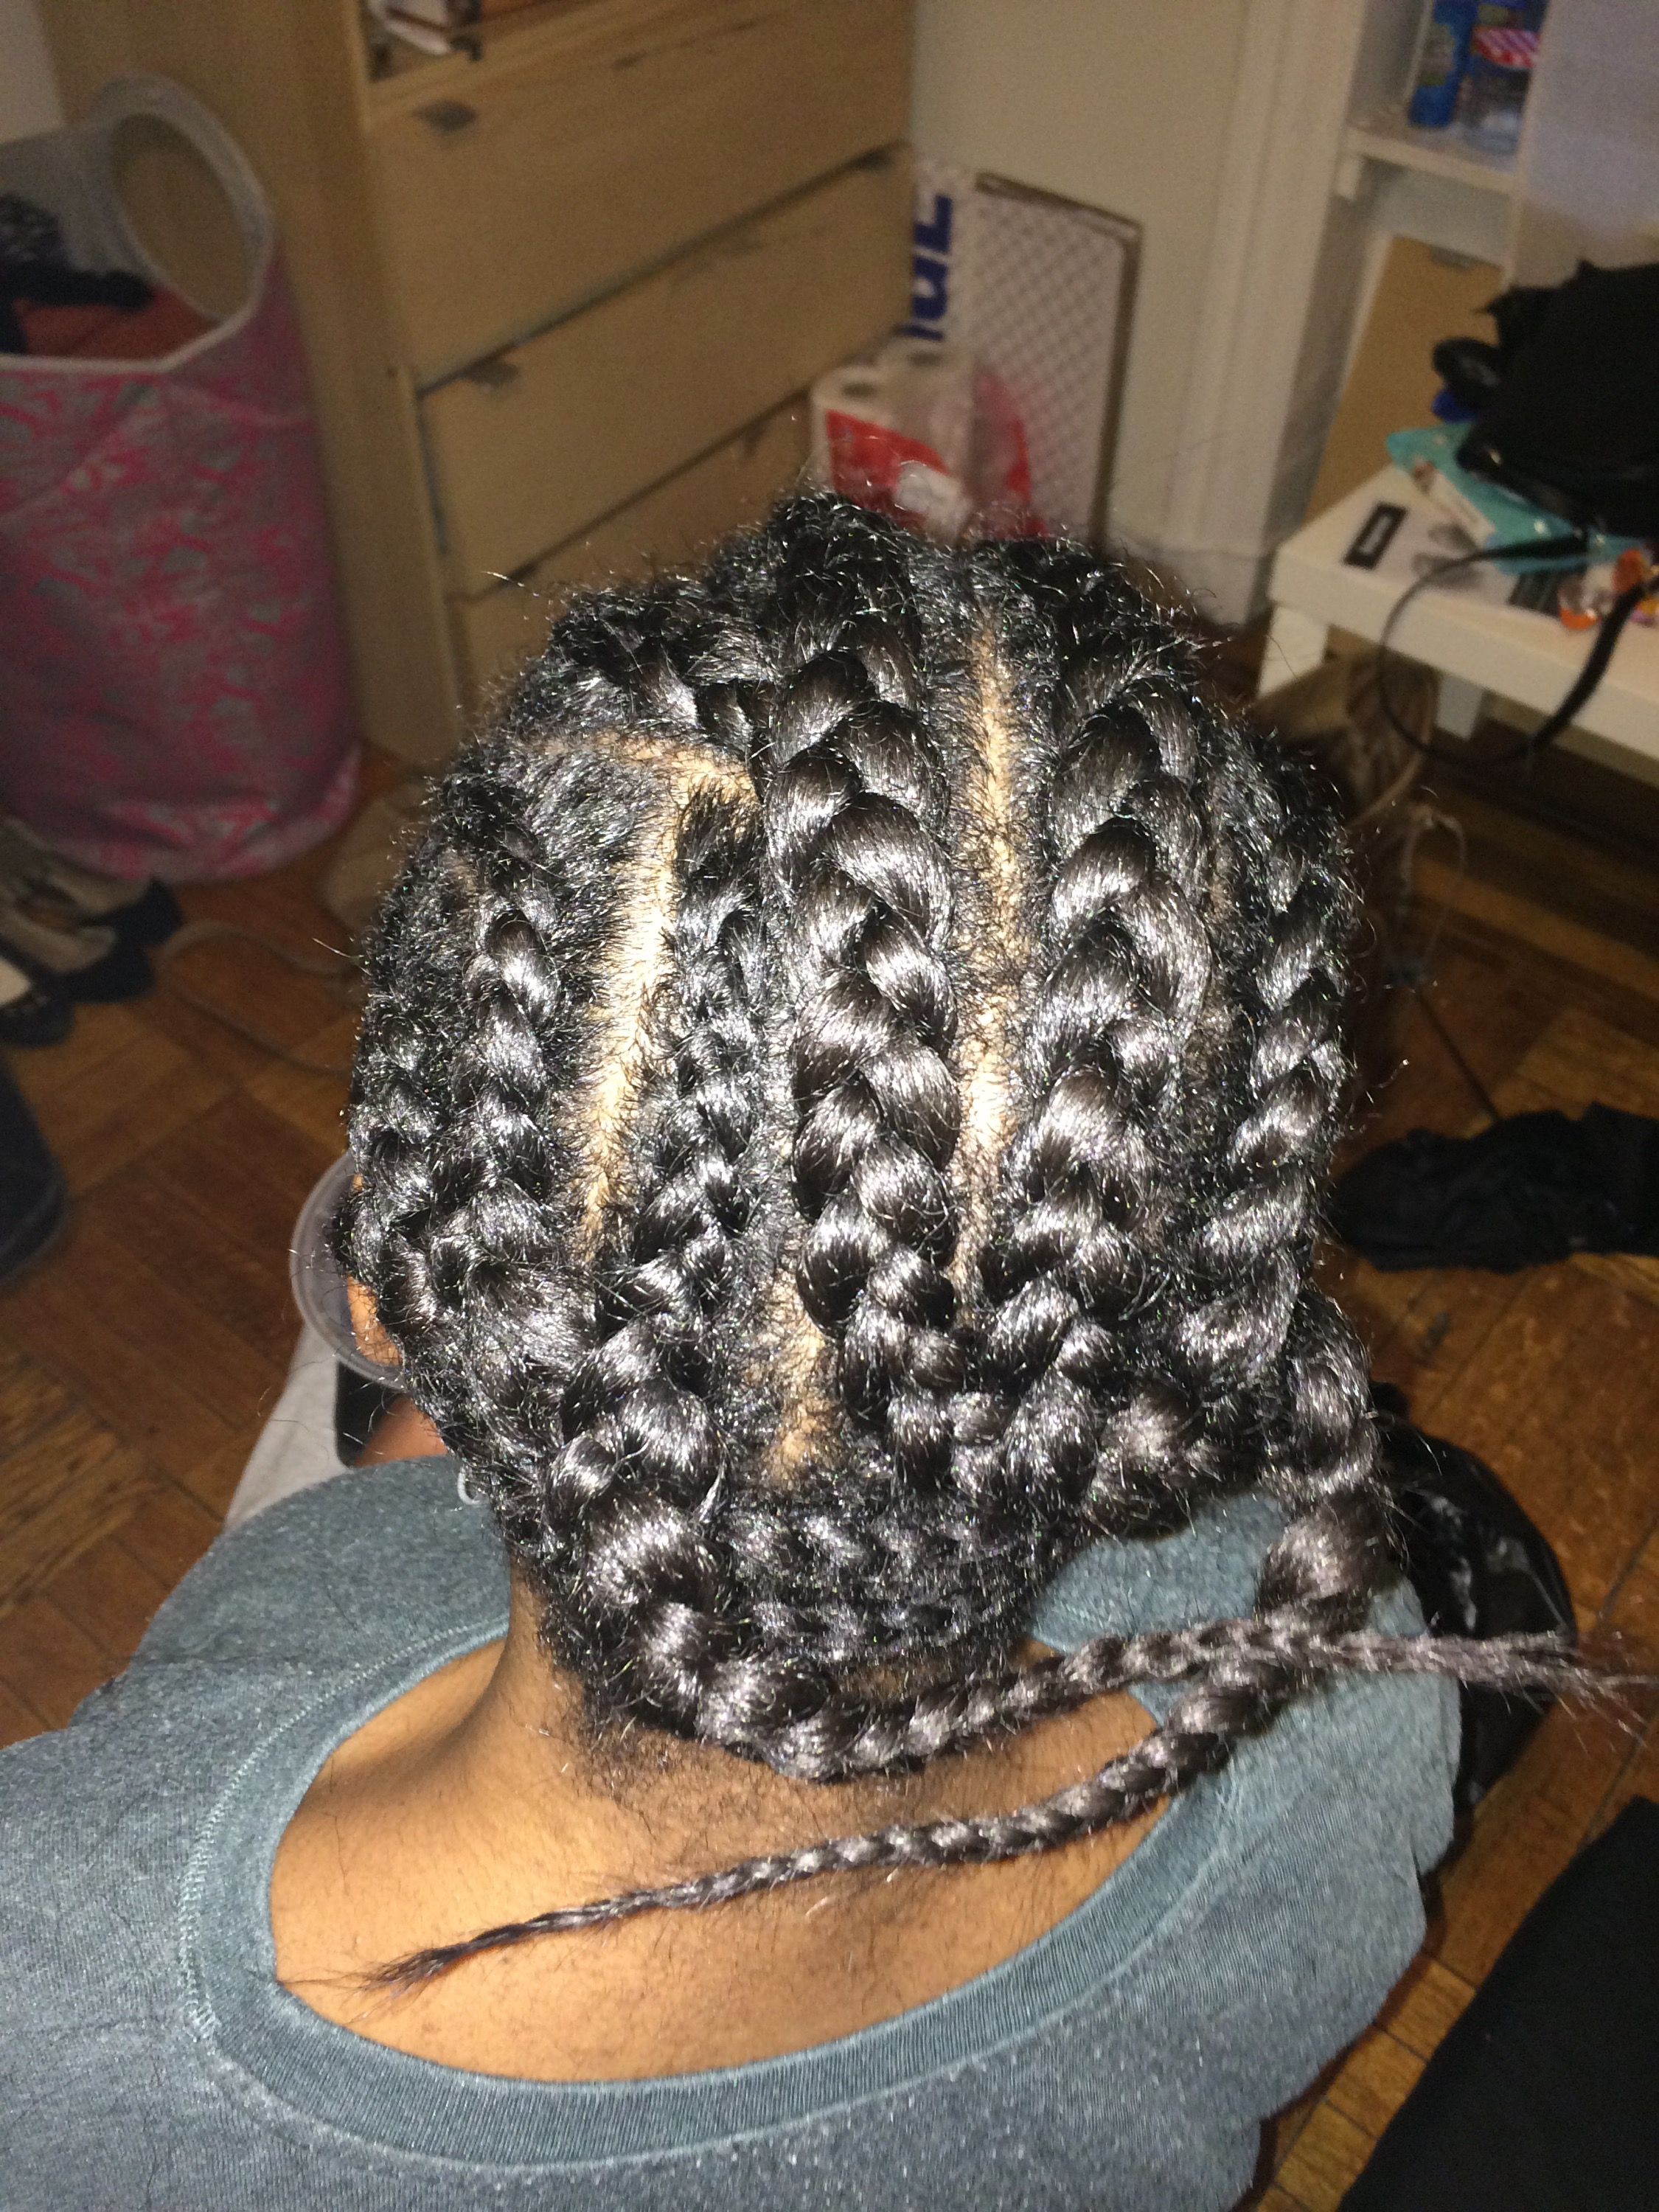 Crochet Braids Salon : Crochet Braids & More- The Kink and I Salon Is Open For Business ...